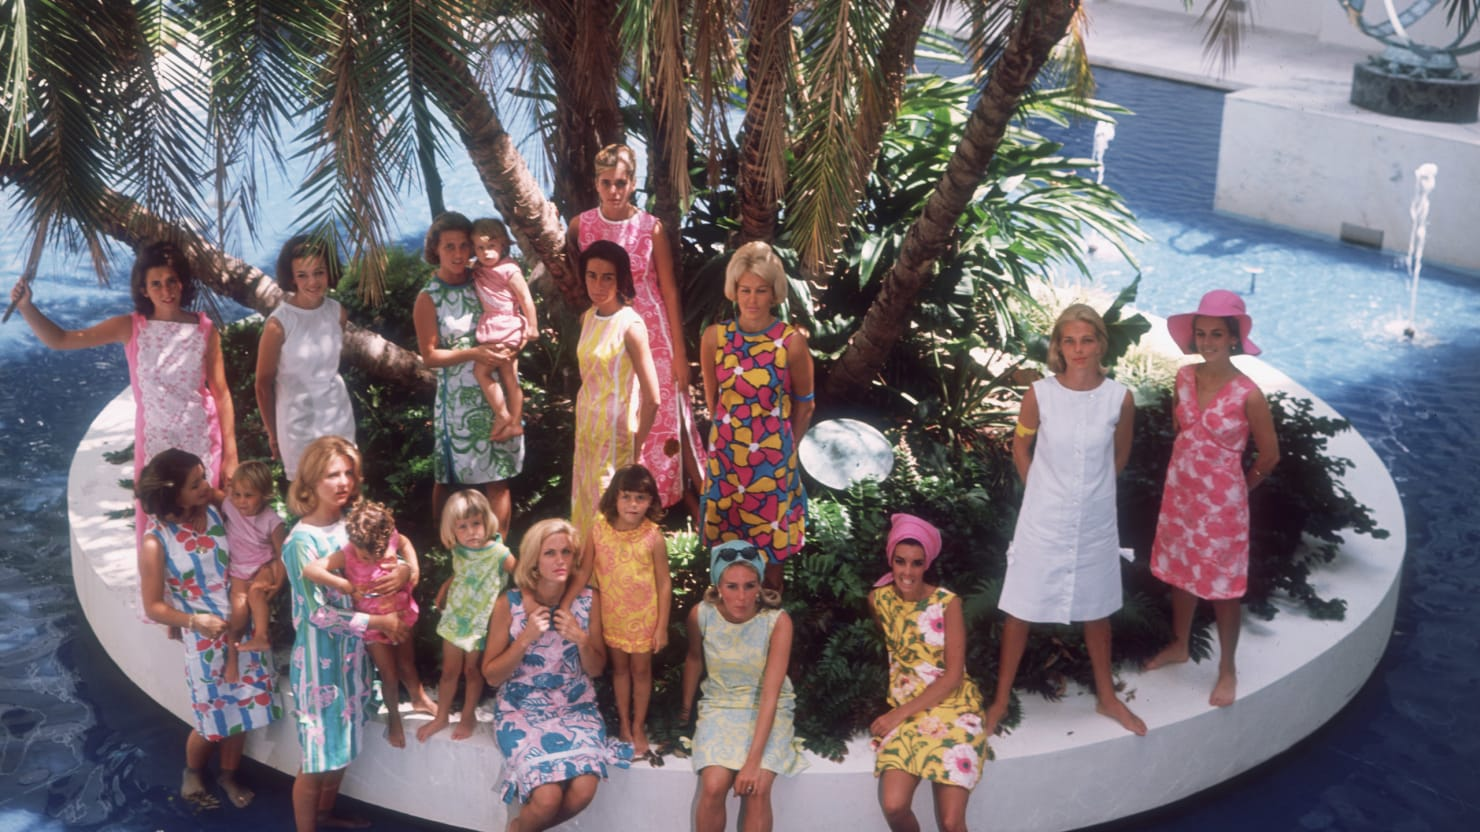 Lilly Pulitzer's Most Iconic Photos